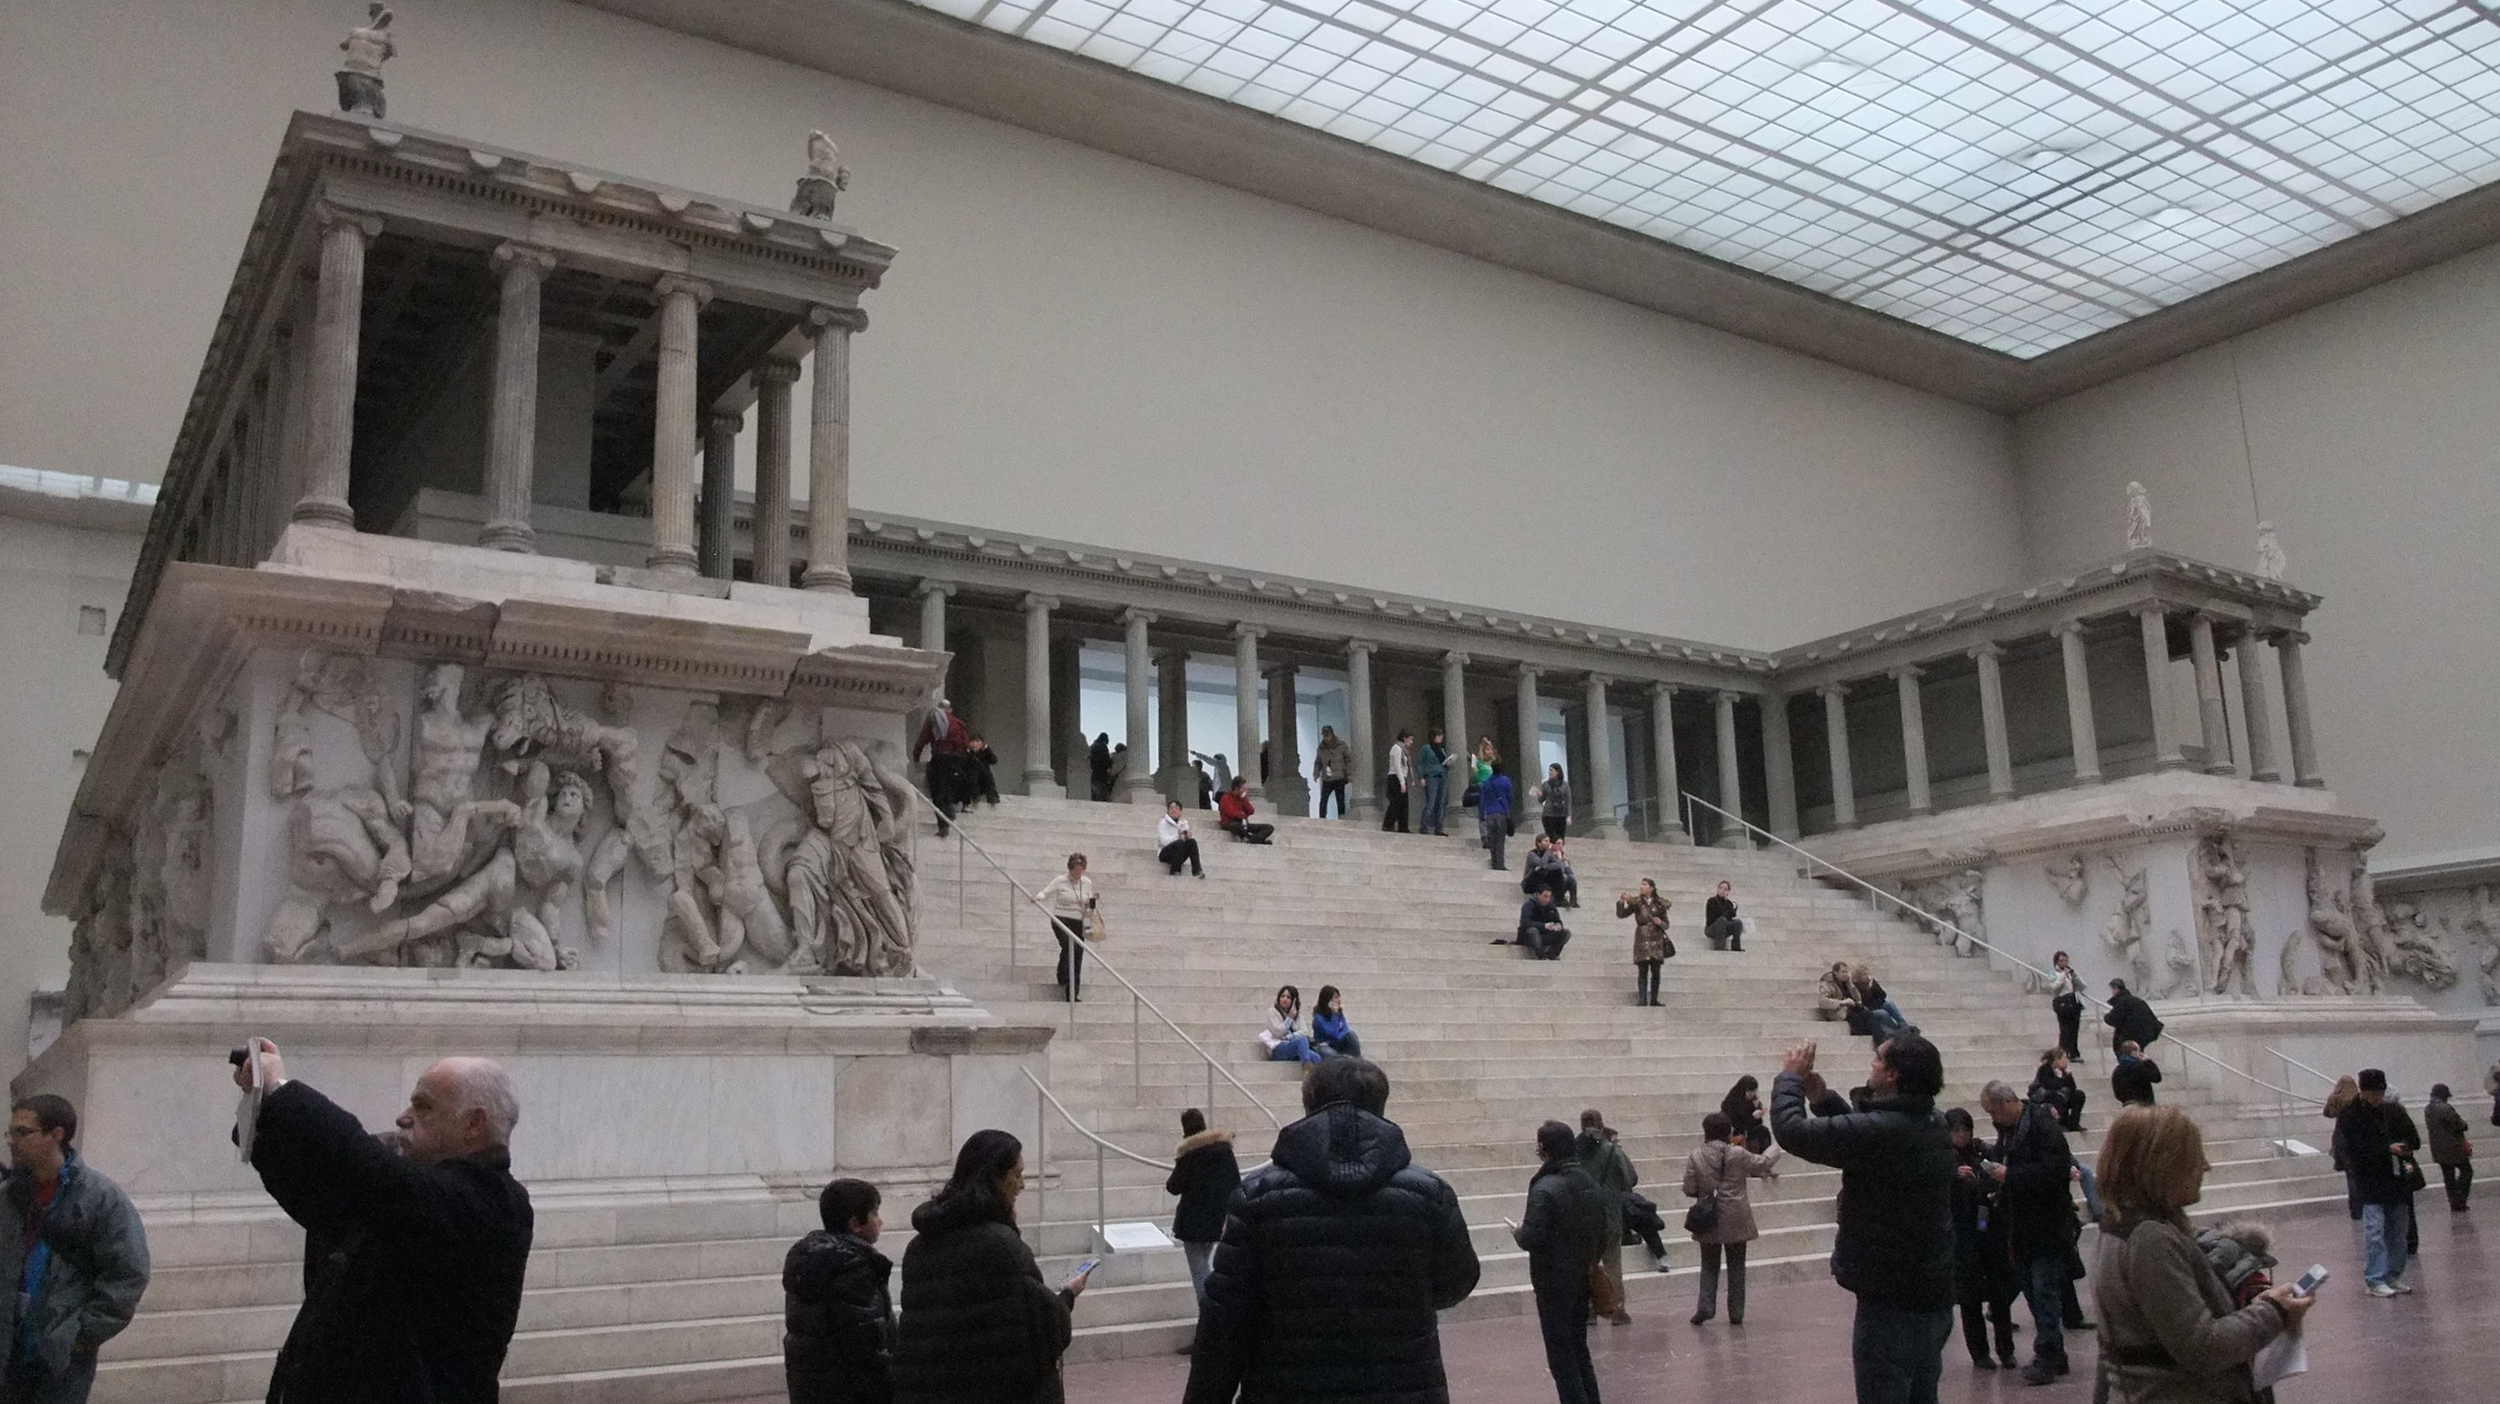 Pergamon Altar at the Pergamon Museum